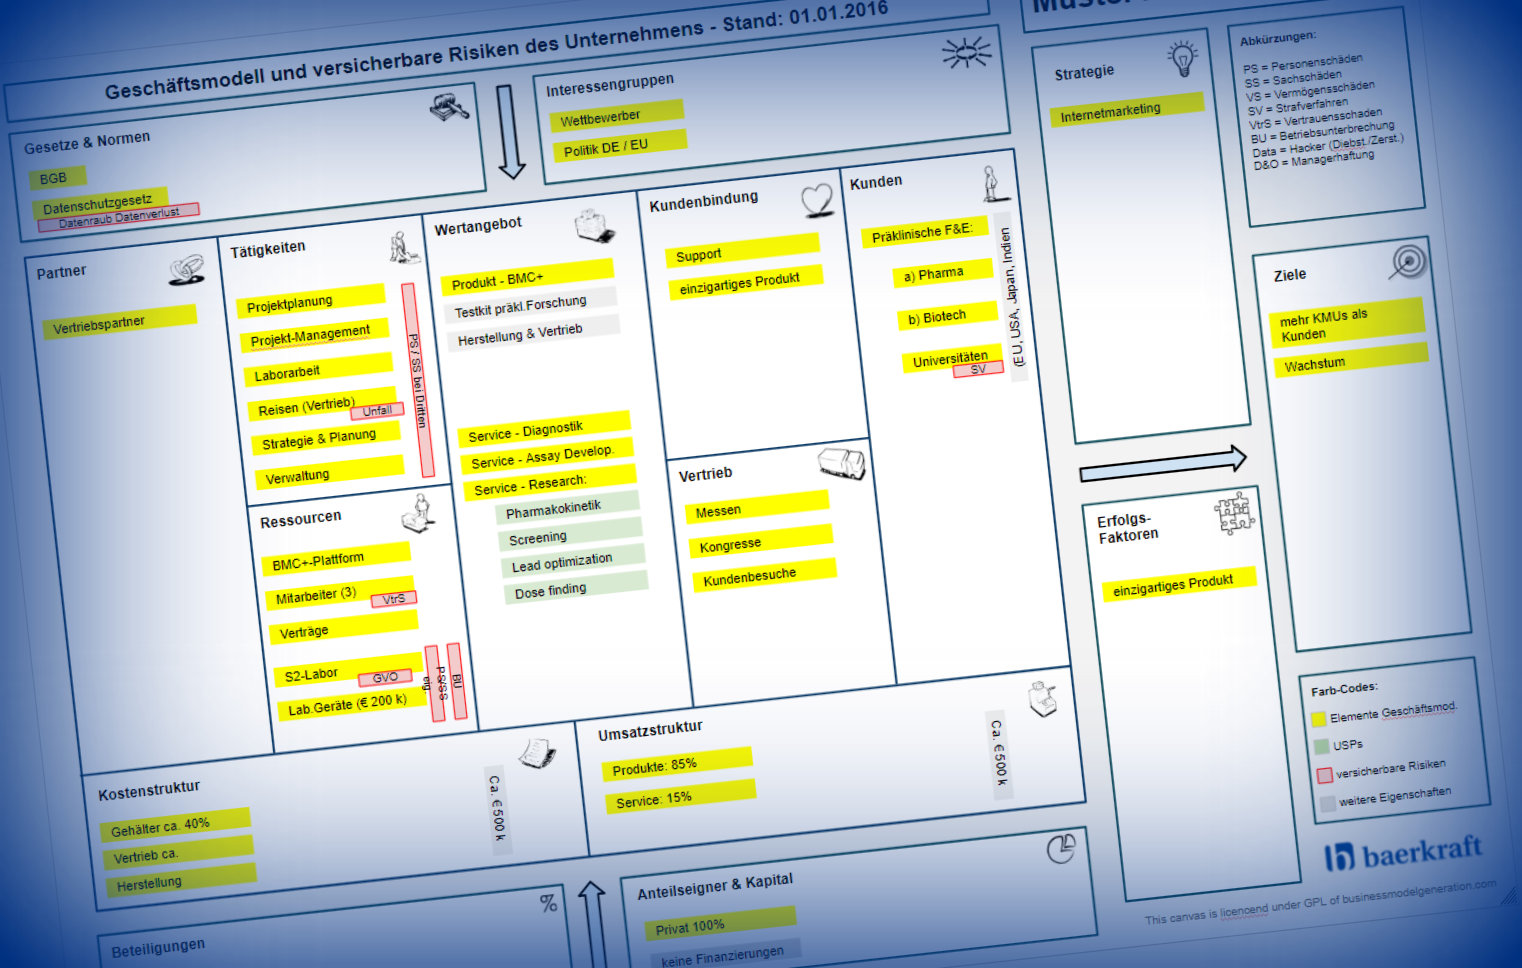 Business Model Canvas - erweitert